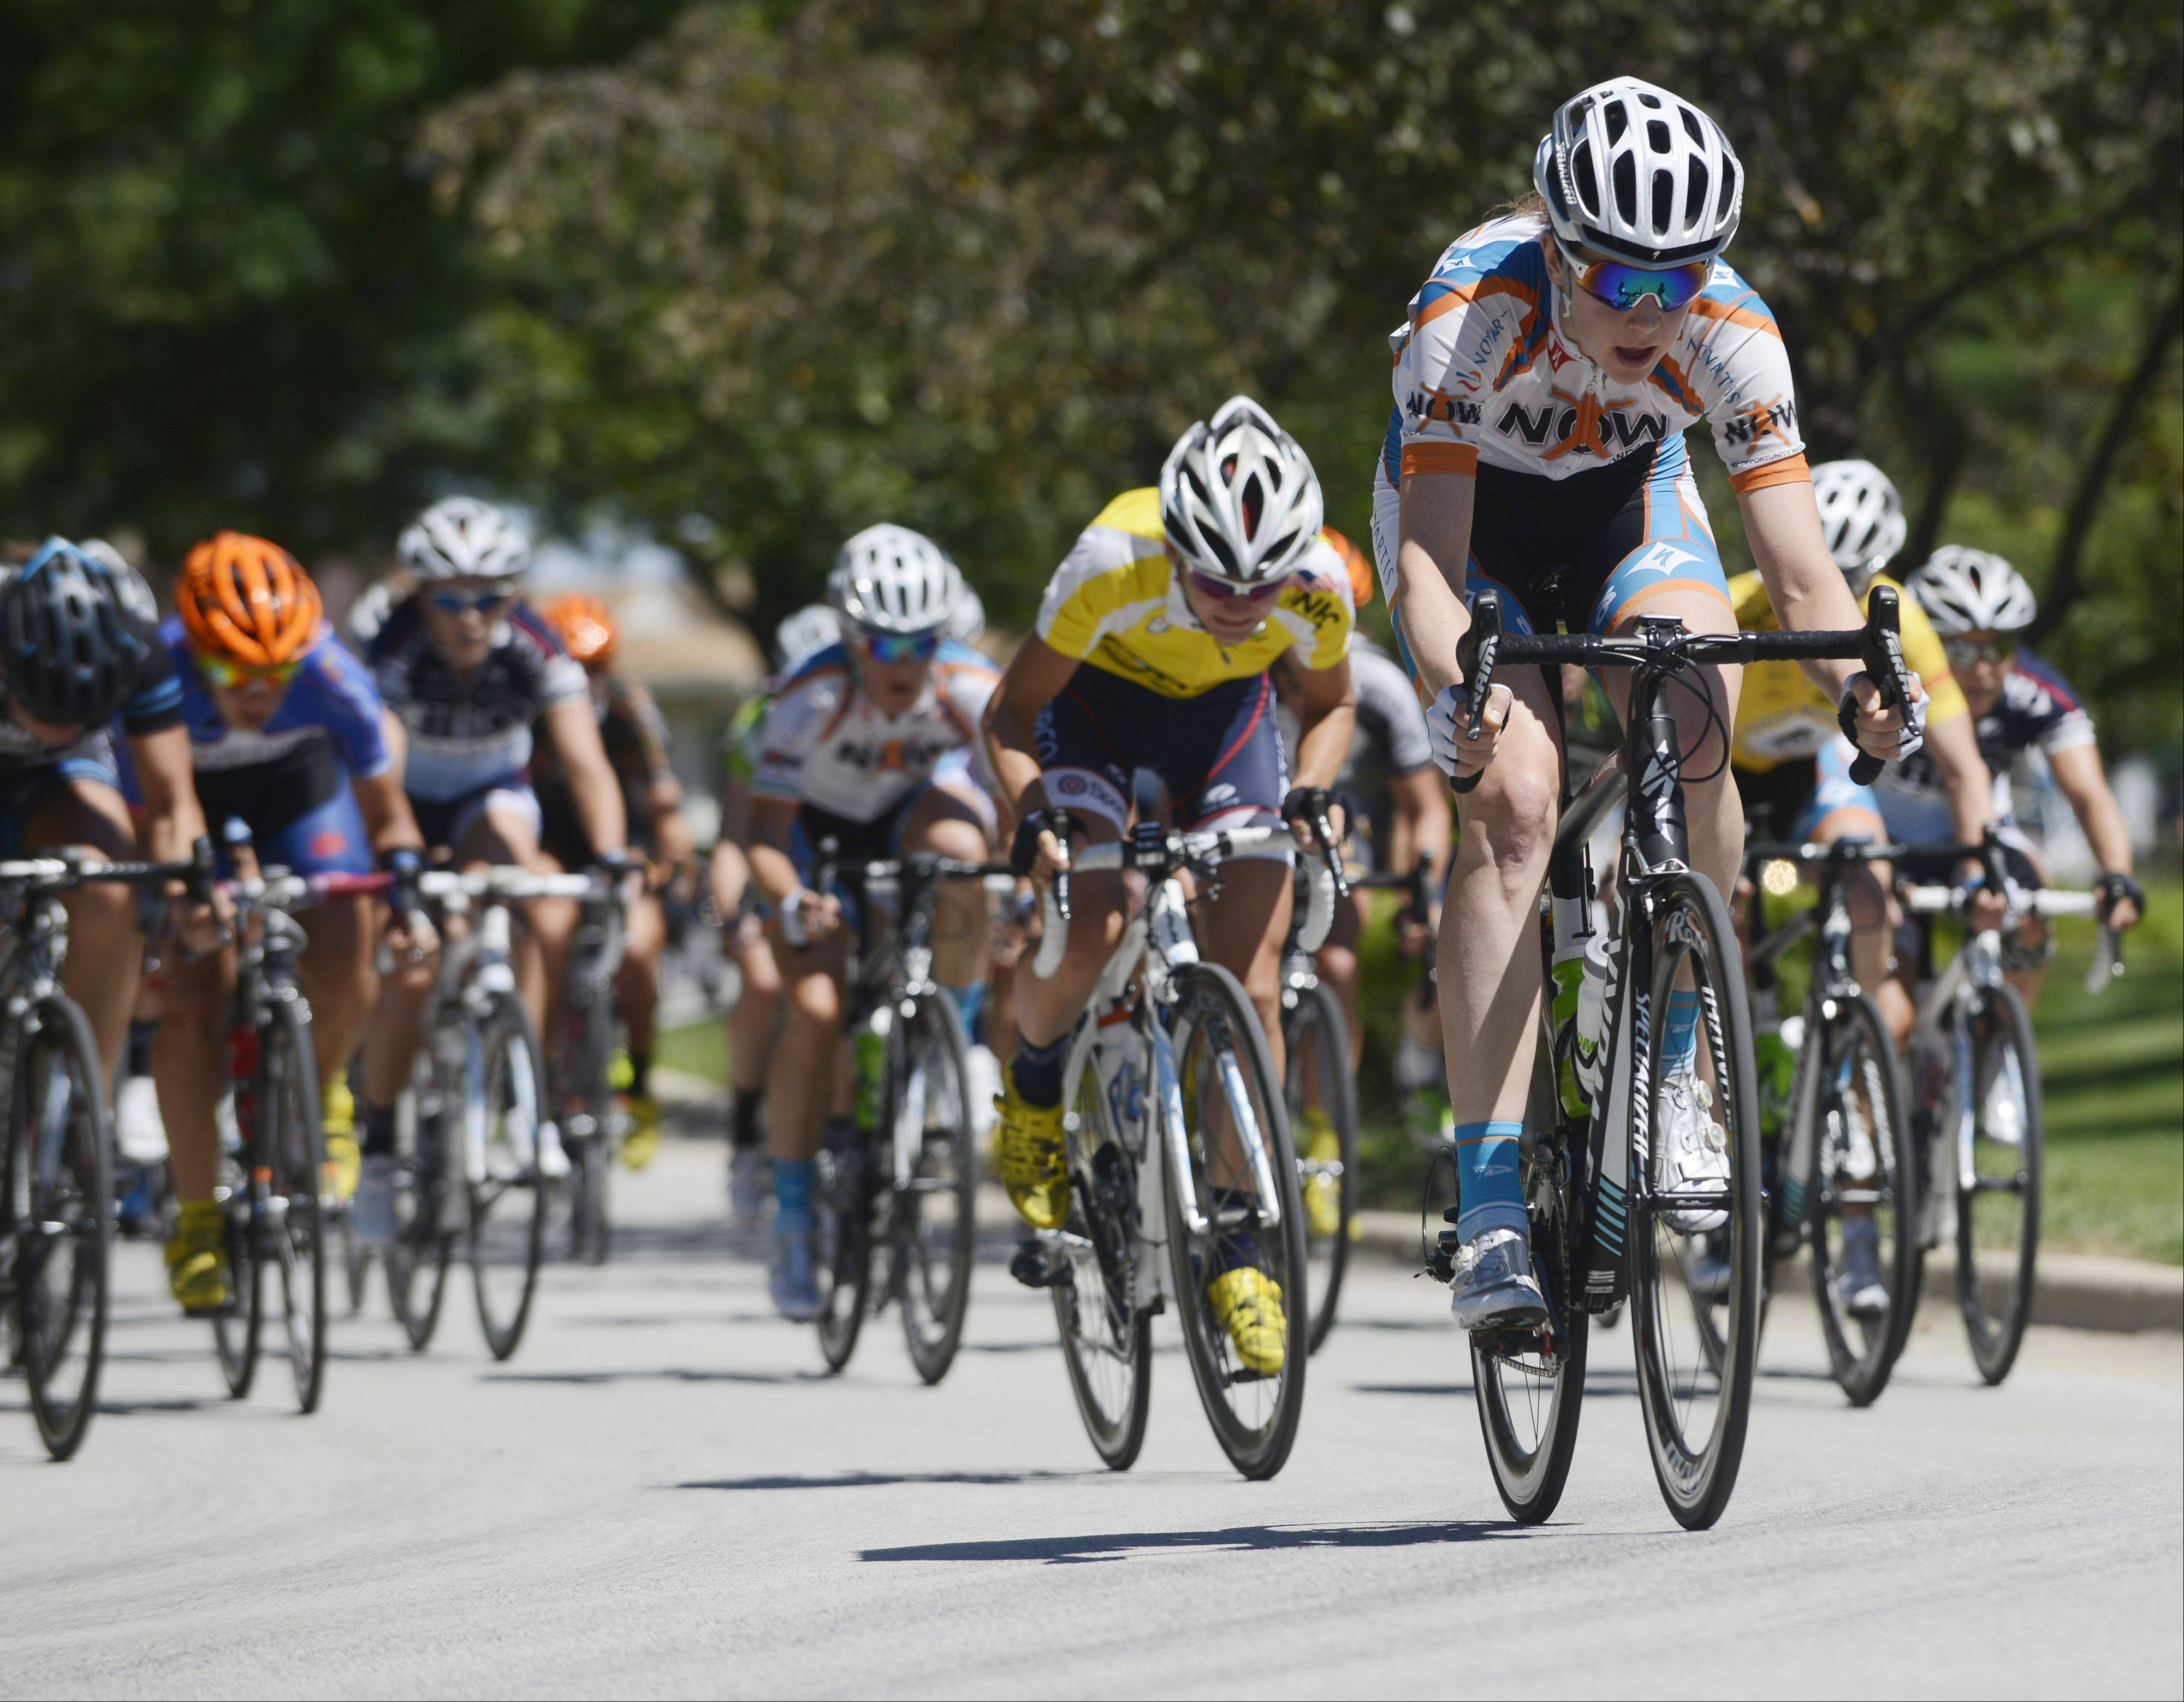 Riders pick up speed on the Elk Grove Boulevard during stage two of the women's pro three-day, three stage race, a 45.3-mile criterium, of the Tour of Elk Grove Saturday.